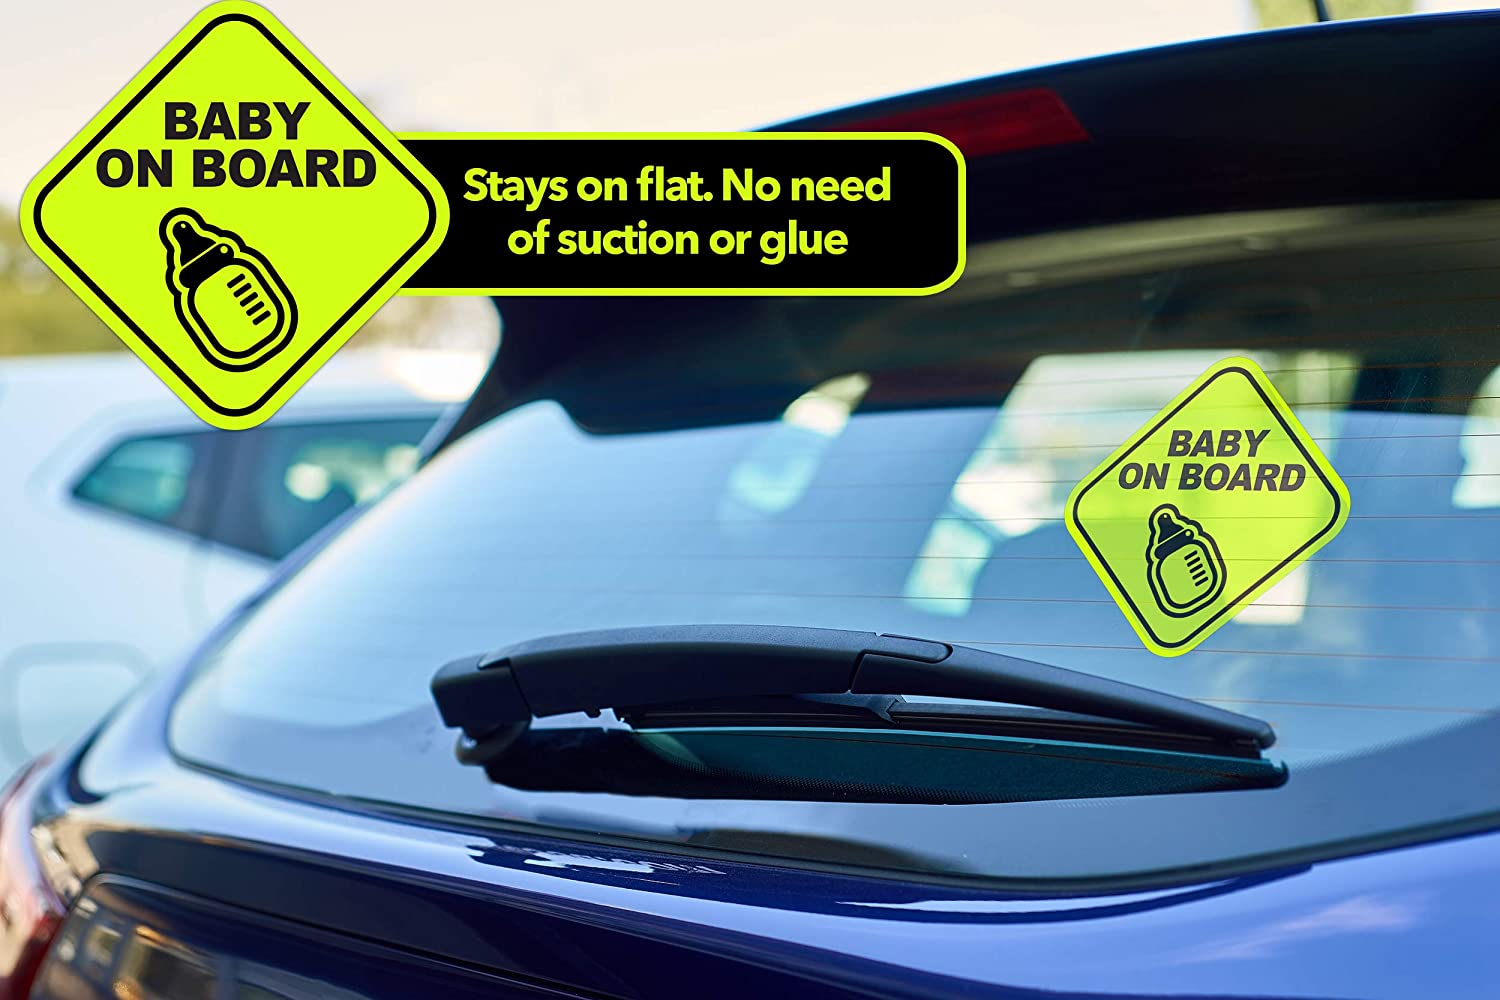 Kickfire 5 Pack Baby on Board - Static Cling Safety - Stickers for Car Accessories - No Glue or Residue | Big Bold Neon Green | Perfect Parent Pack Newborn Essentials Must Have (5 Pack)